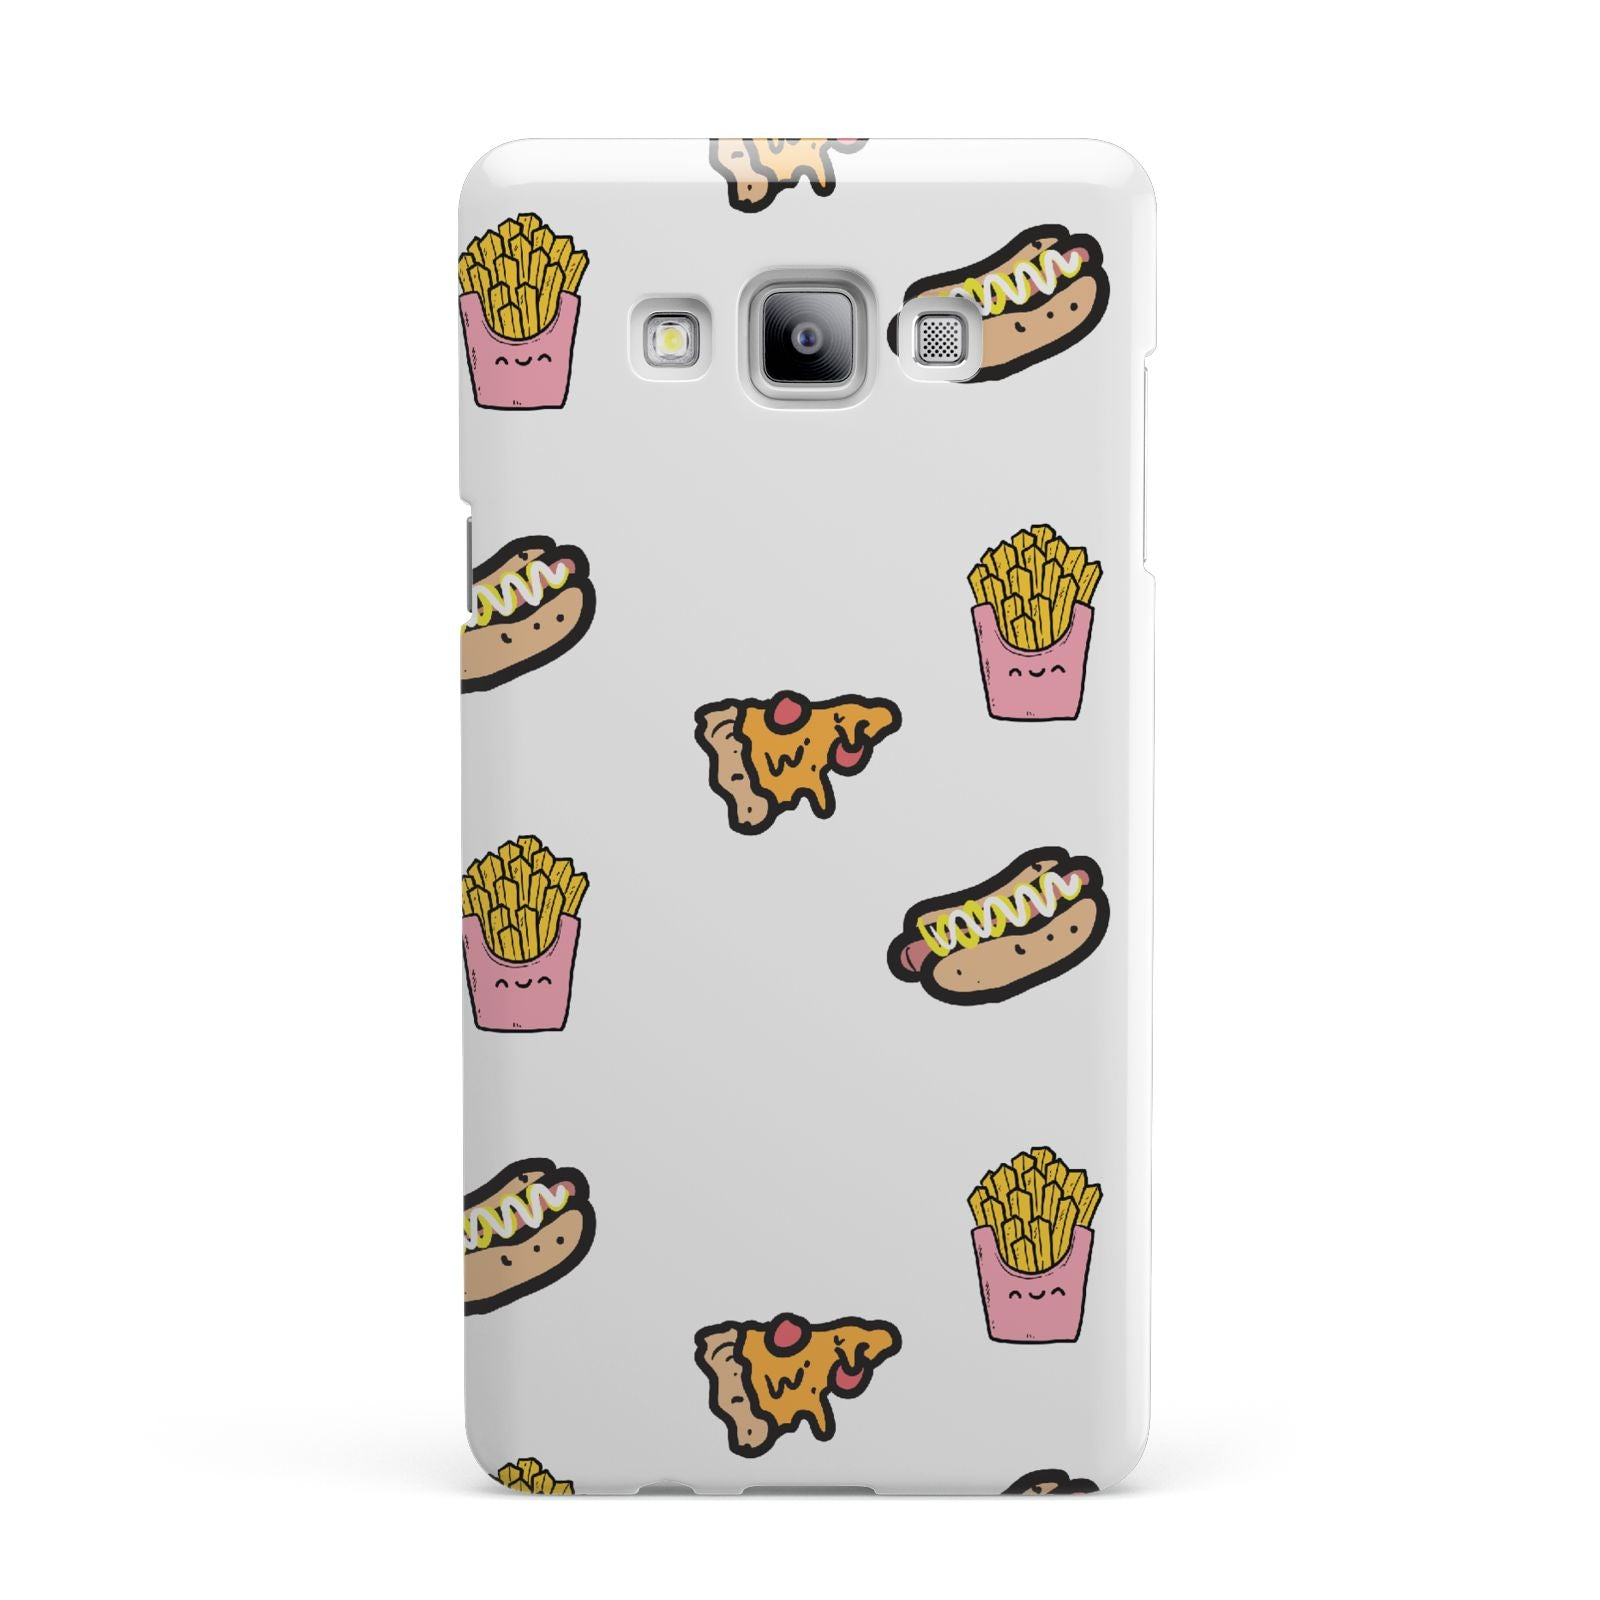 Fries Pizza Hot Dog Samsung Galaxy A7 2015 Case